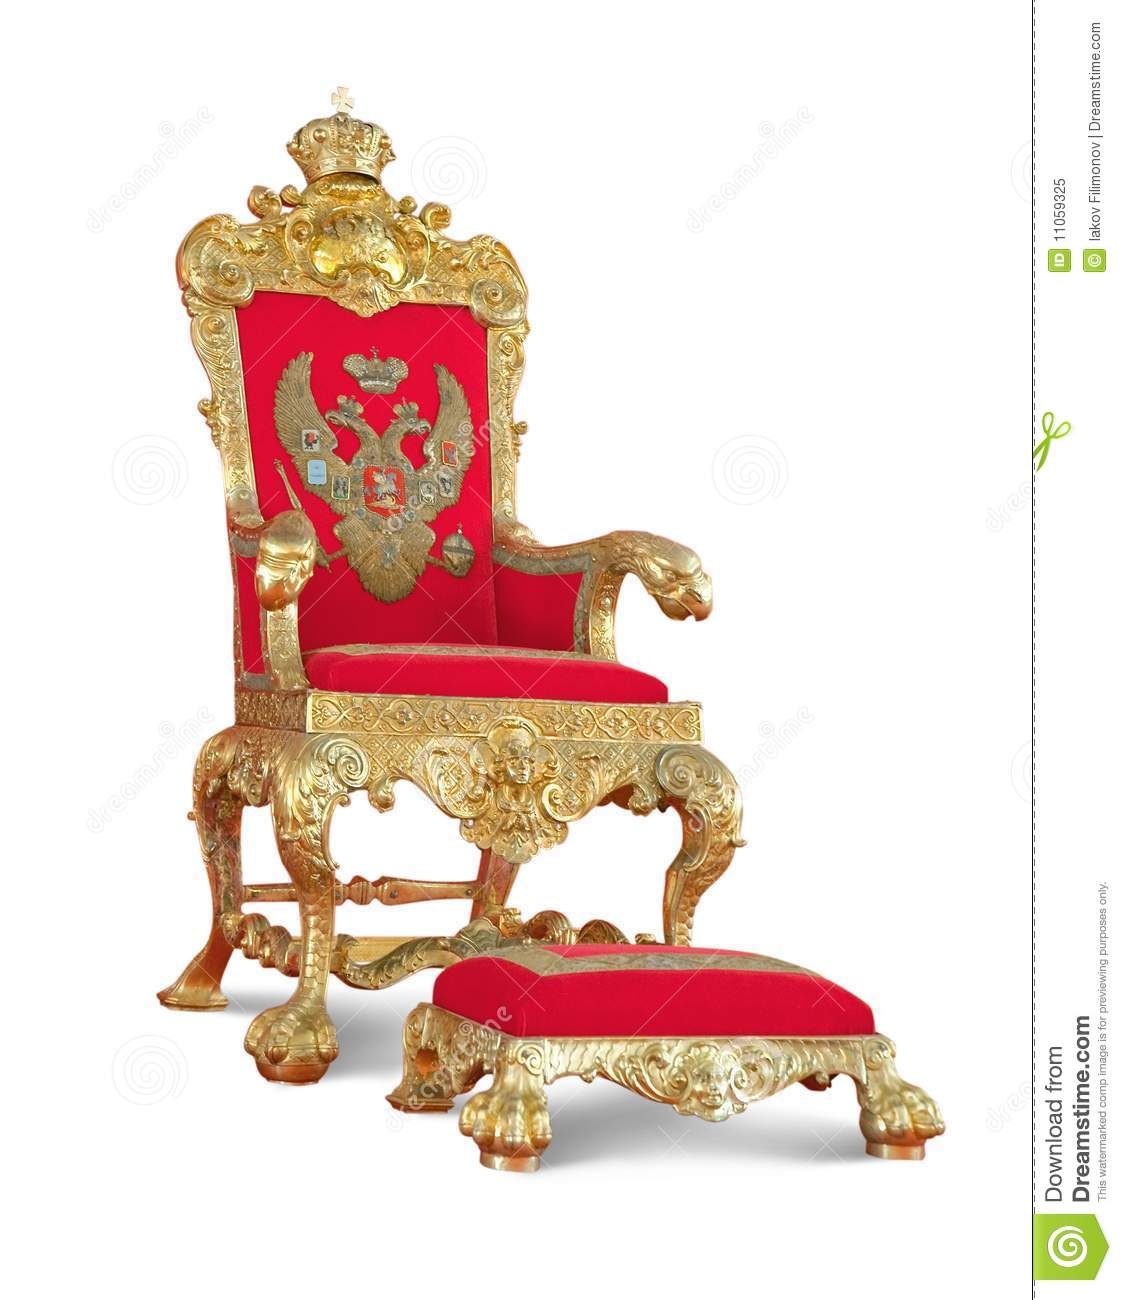 Golden Royalty S Throne Isolated With Path Royalty Free